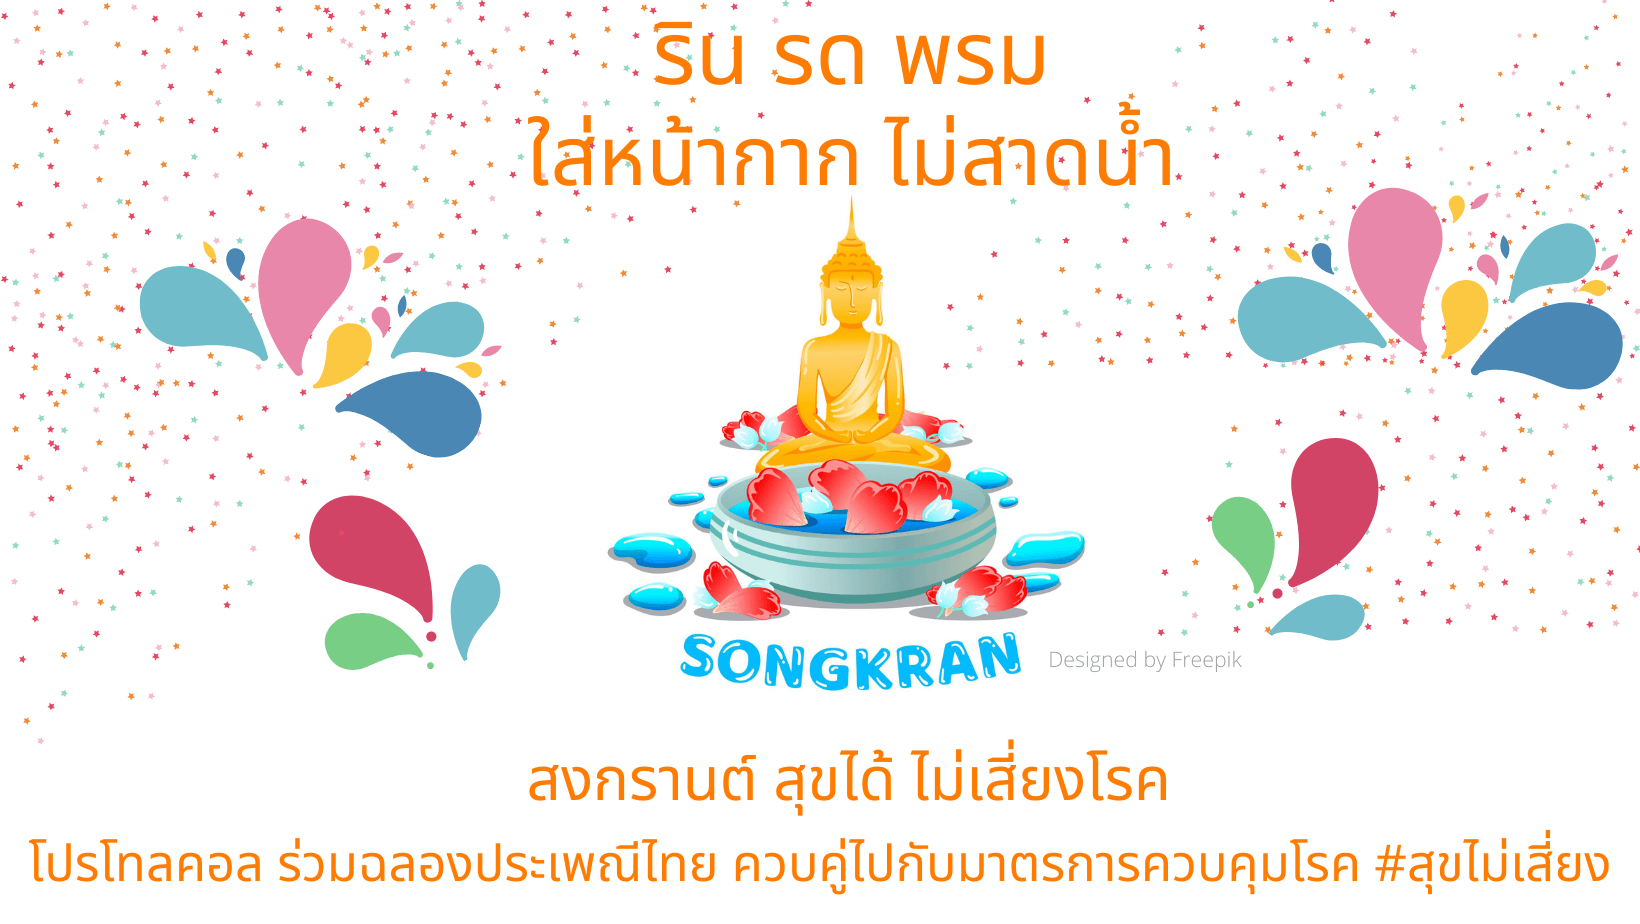 Protollcall wish you safe in Songkran festival 2021